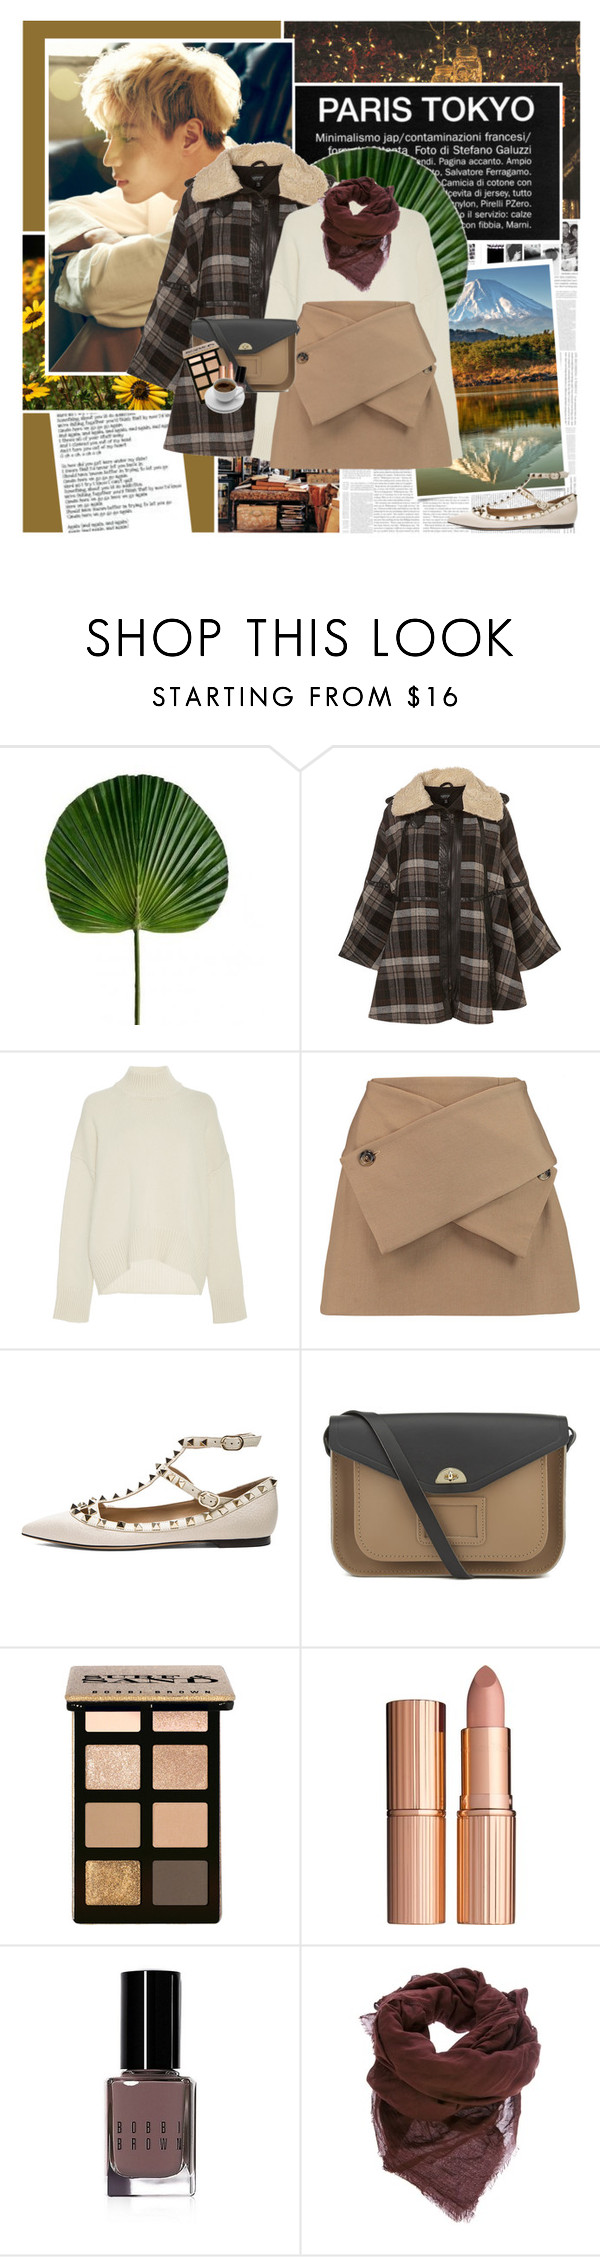 """319:Taemin"" by unicorn-plushie ❤ liked on Polyvore featuring Again, Fuji, Brock Collection, J.W. Anderson, Valentino, The Cambridge Satchel Company, Bobbi Brown Cosmetics, Charlotte Tilbury and Faliero Sarti"